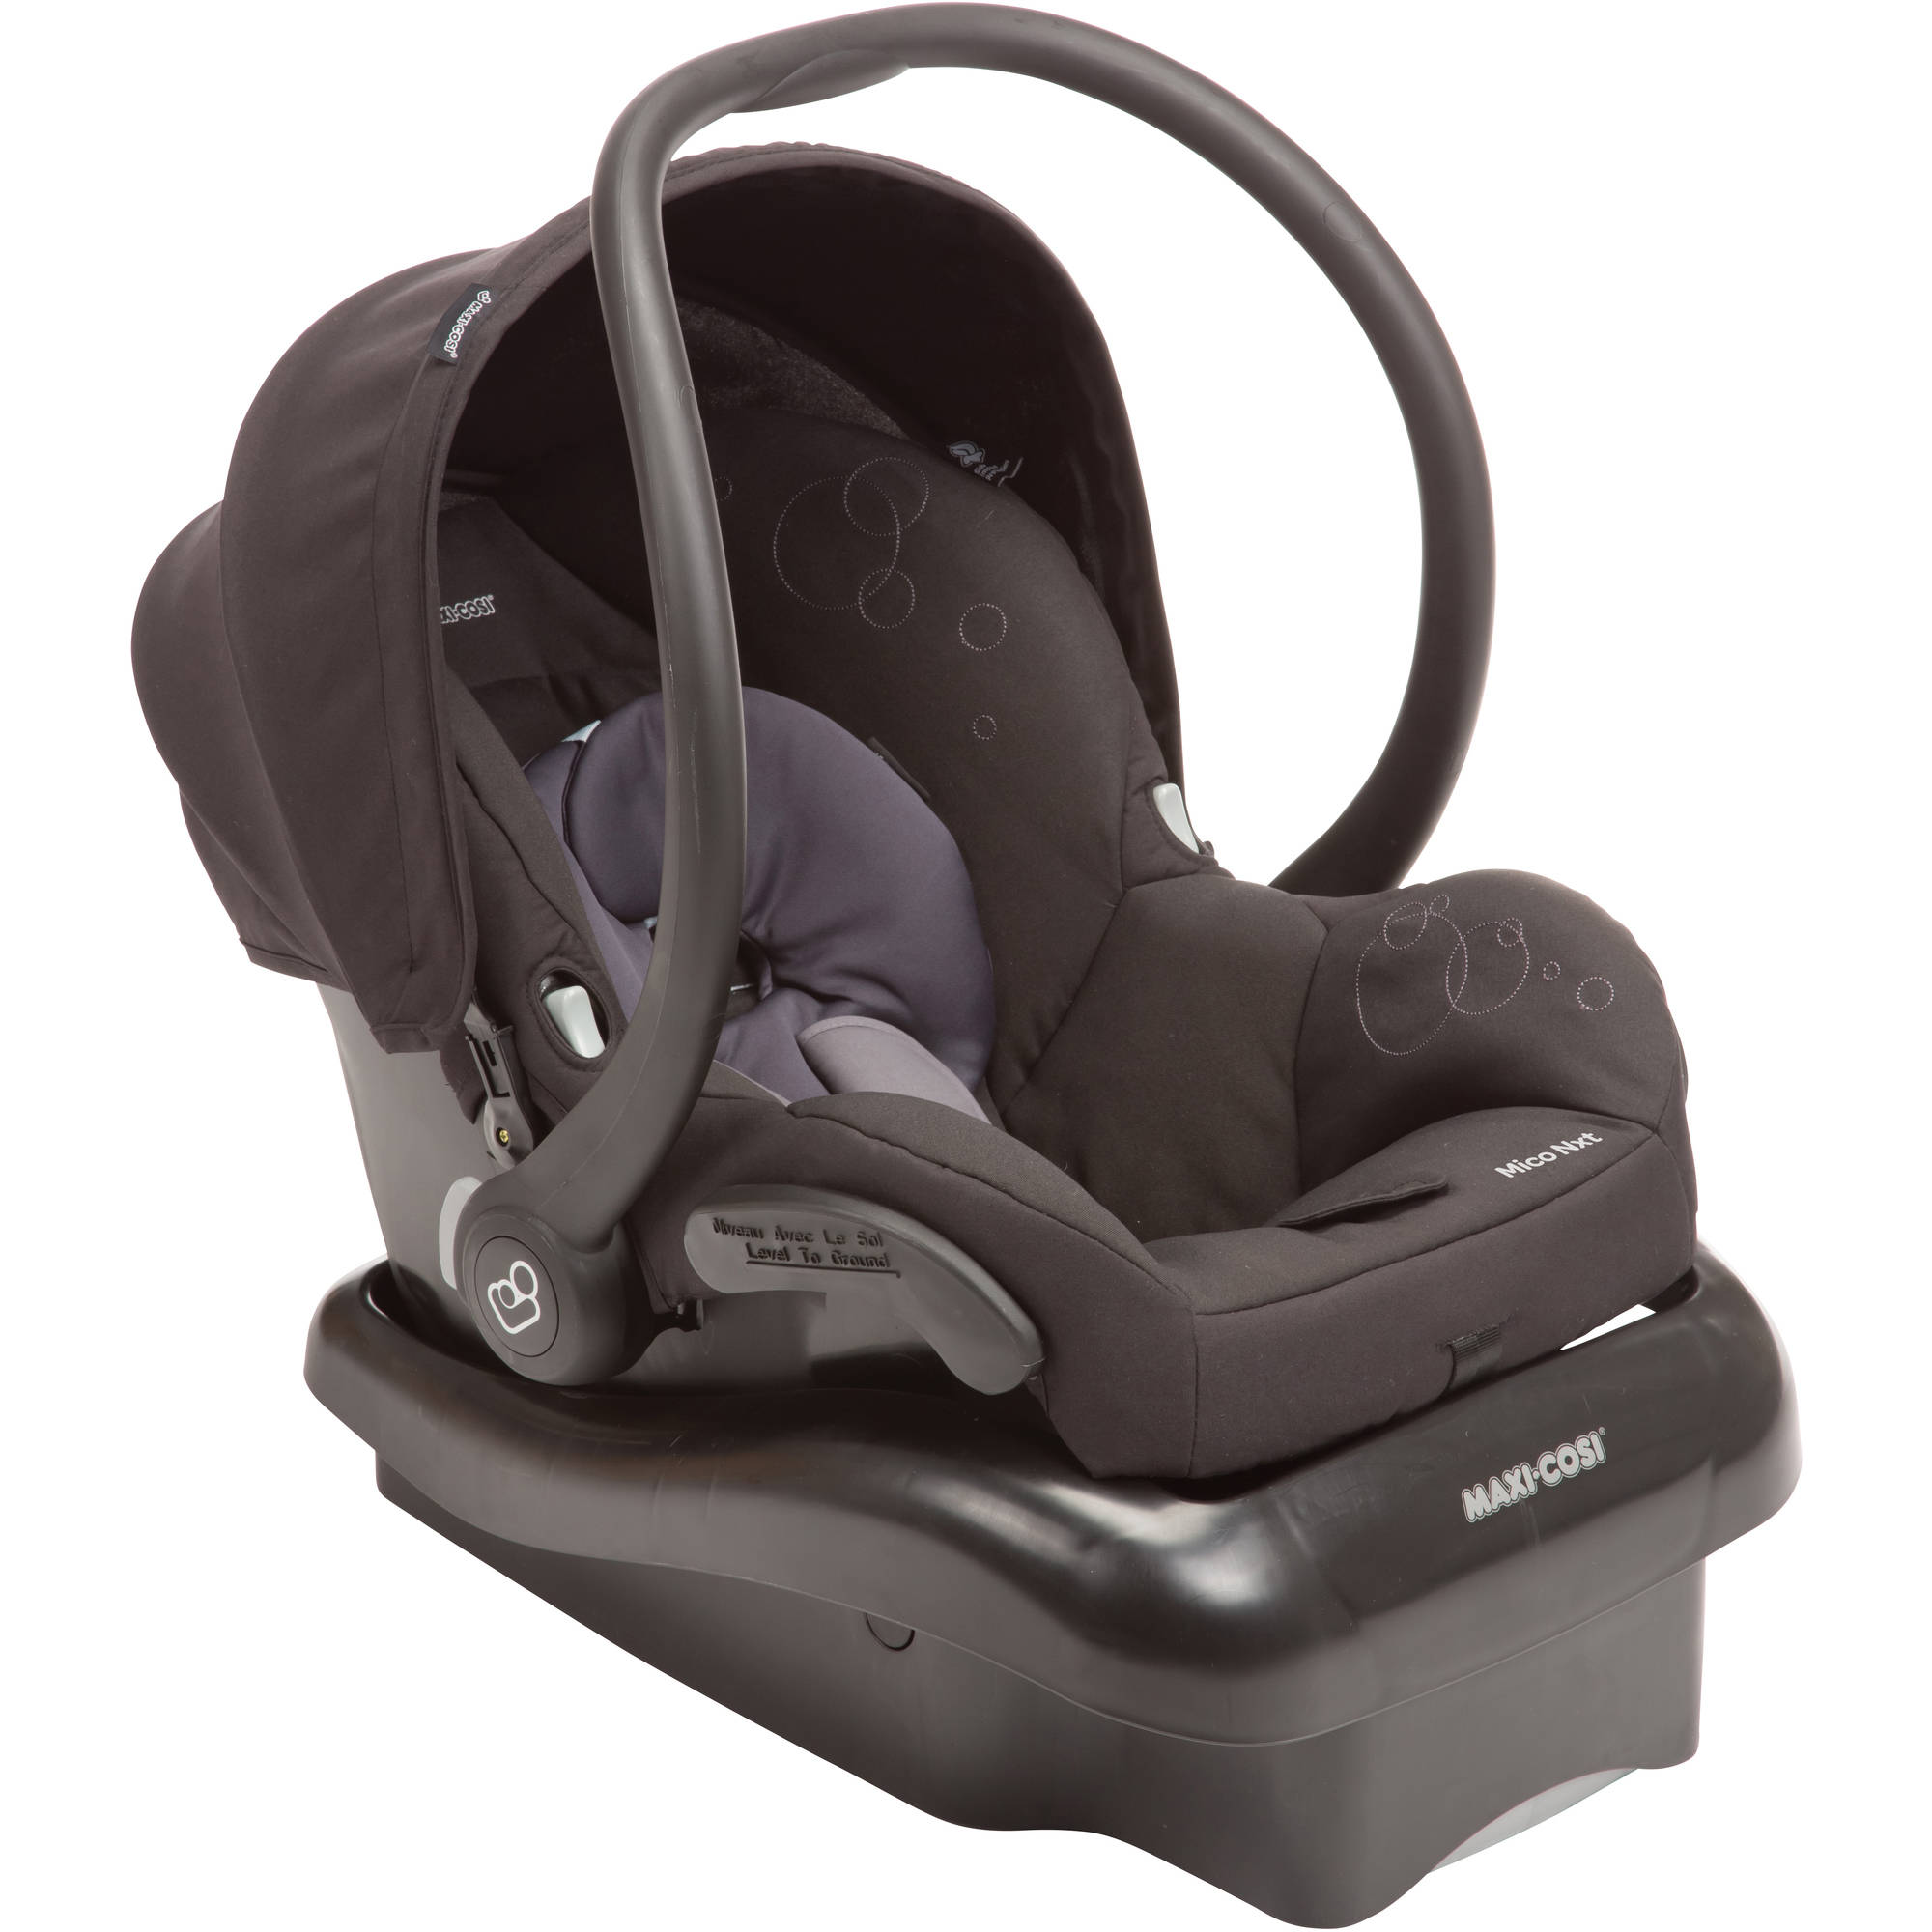 Maxi Cosi Mico Nxt Infant Car Seat, Choose Your Color